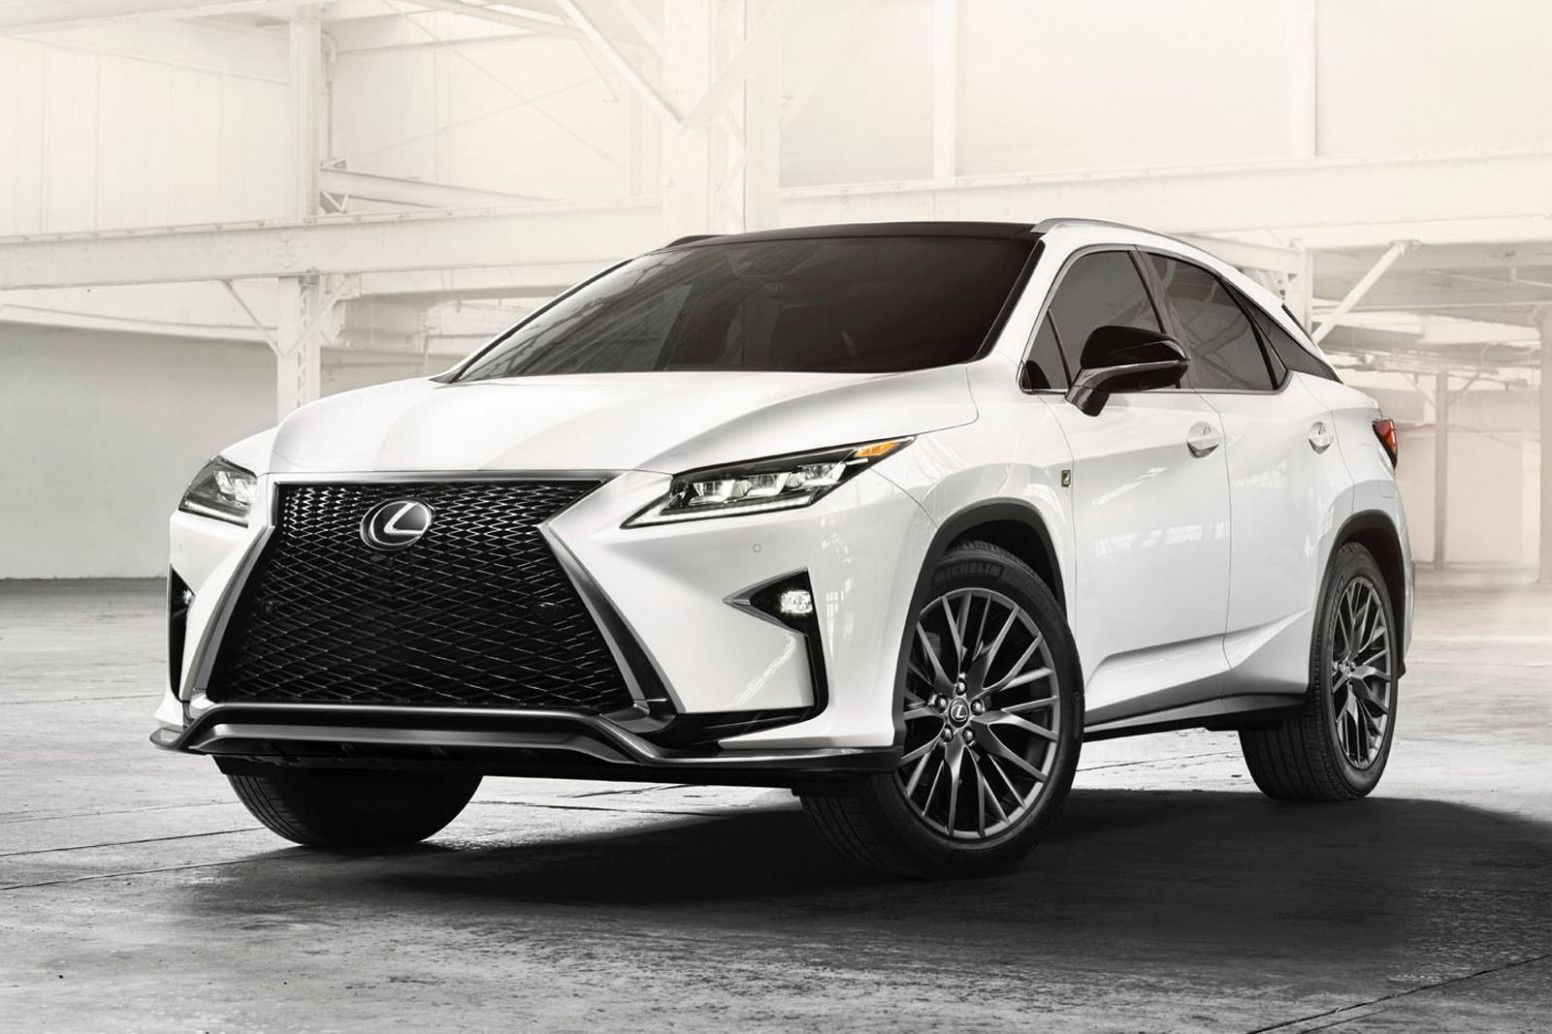 Lexus Plug In Hybrid SUV 10 Specs And Review Lexus rx